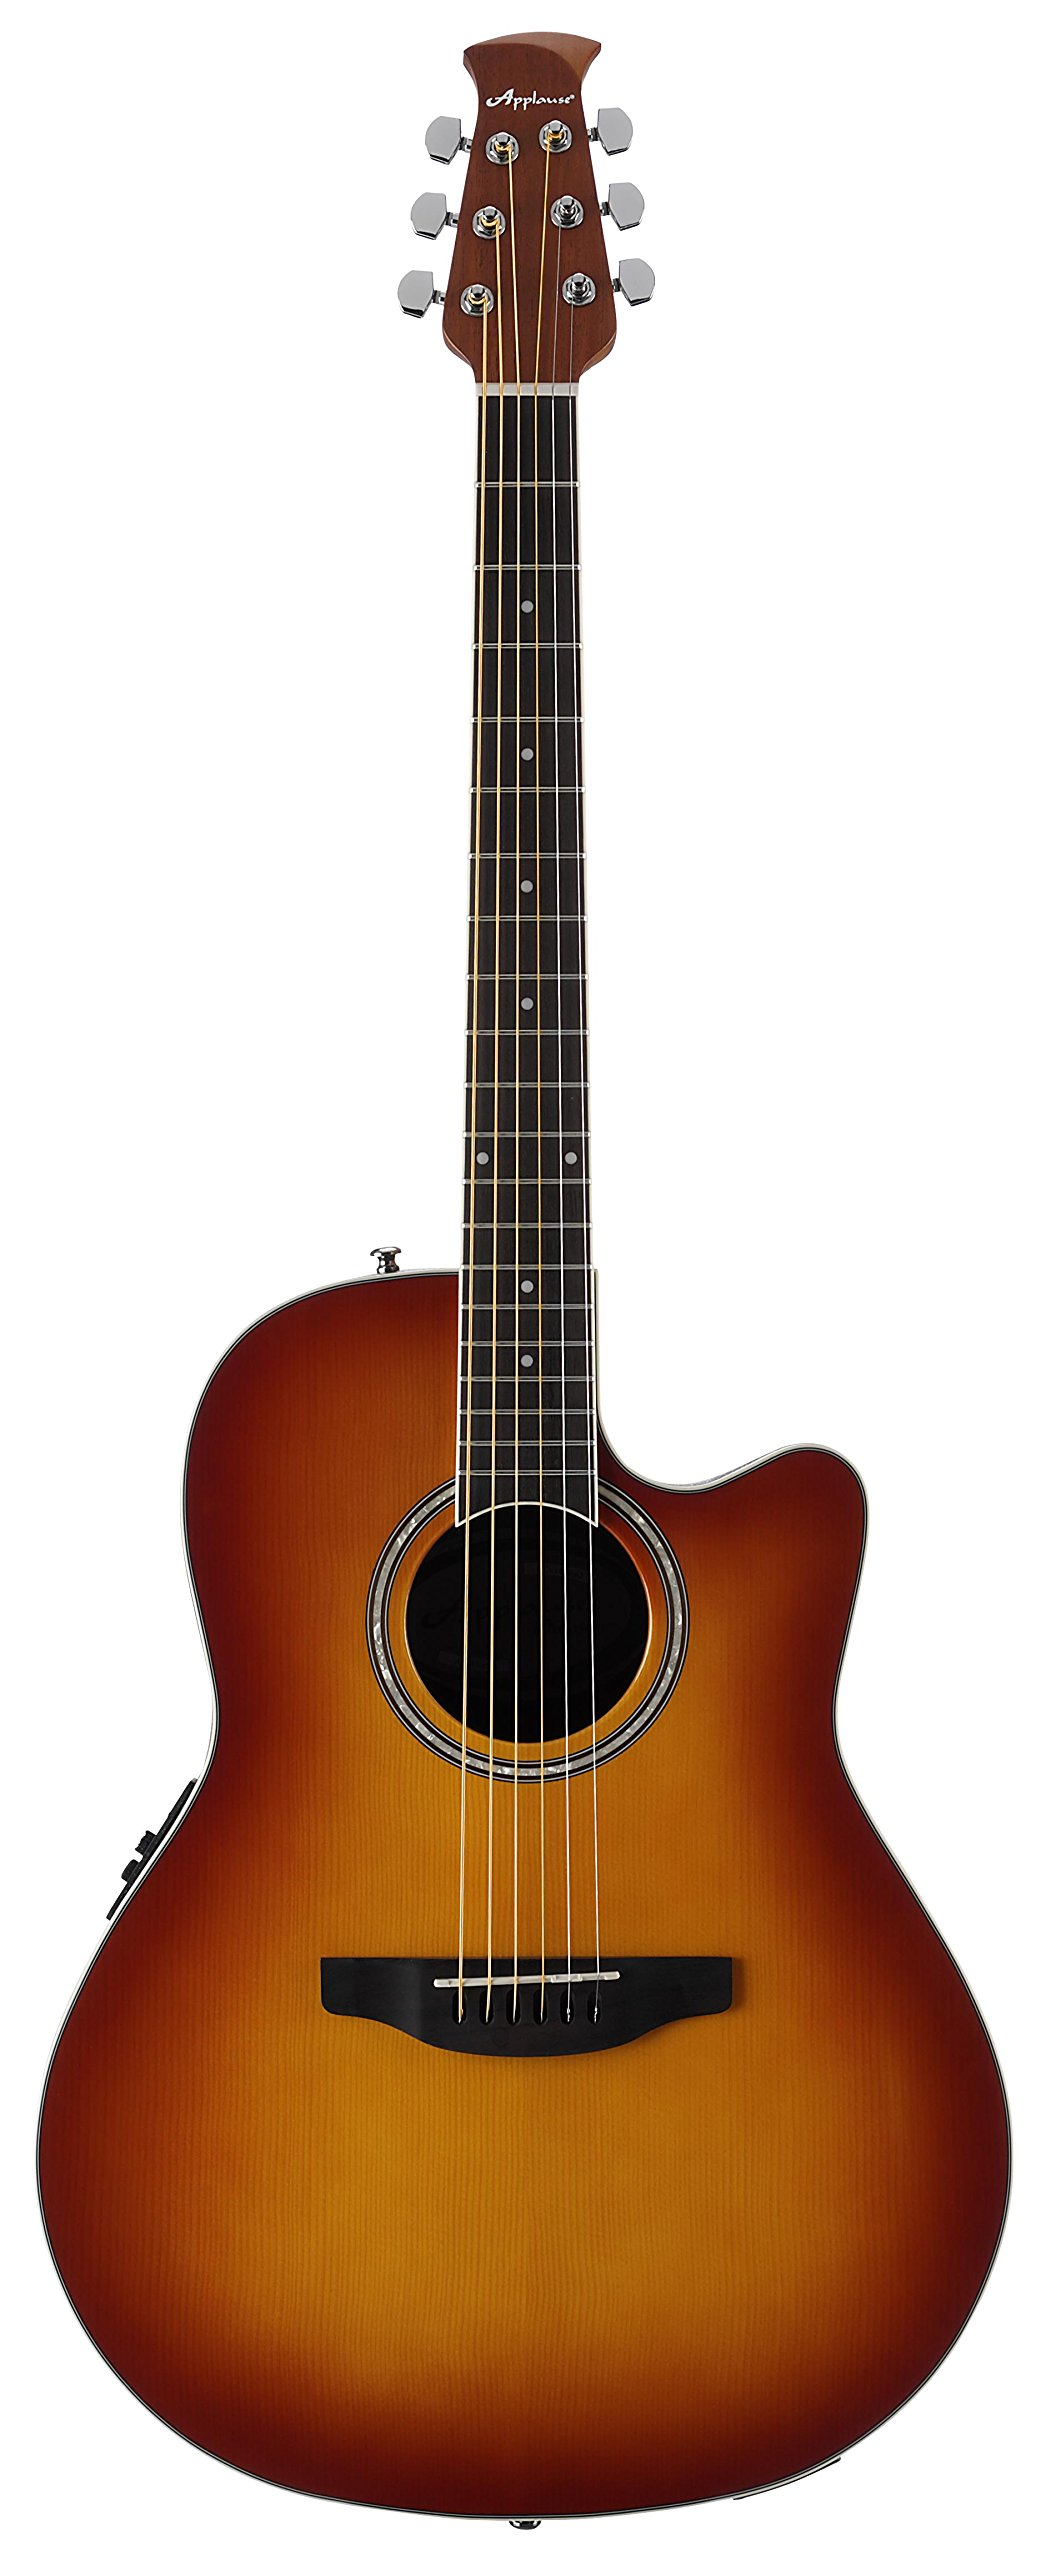 Ovation Applause 6 String Acoustic-Electric Guitar, Right, Honey Burst, Mid-Depth (AB24II-HB)